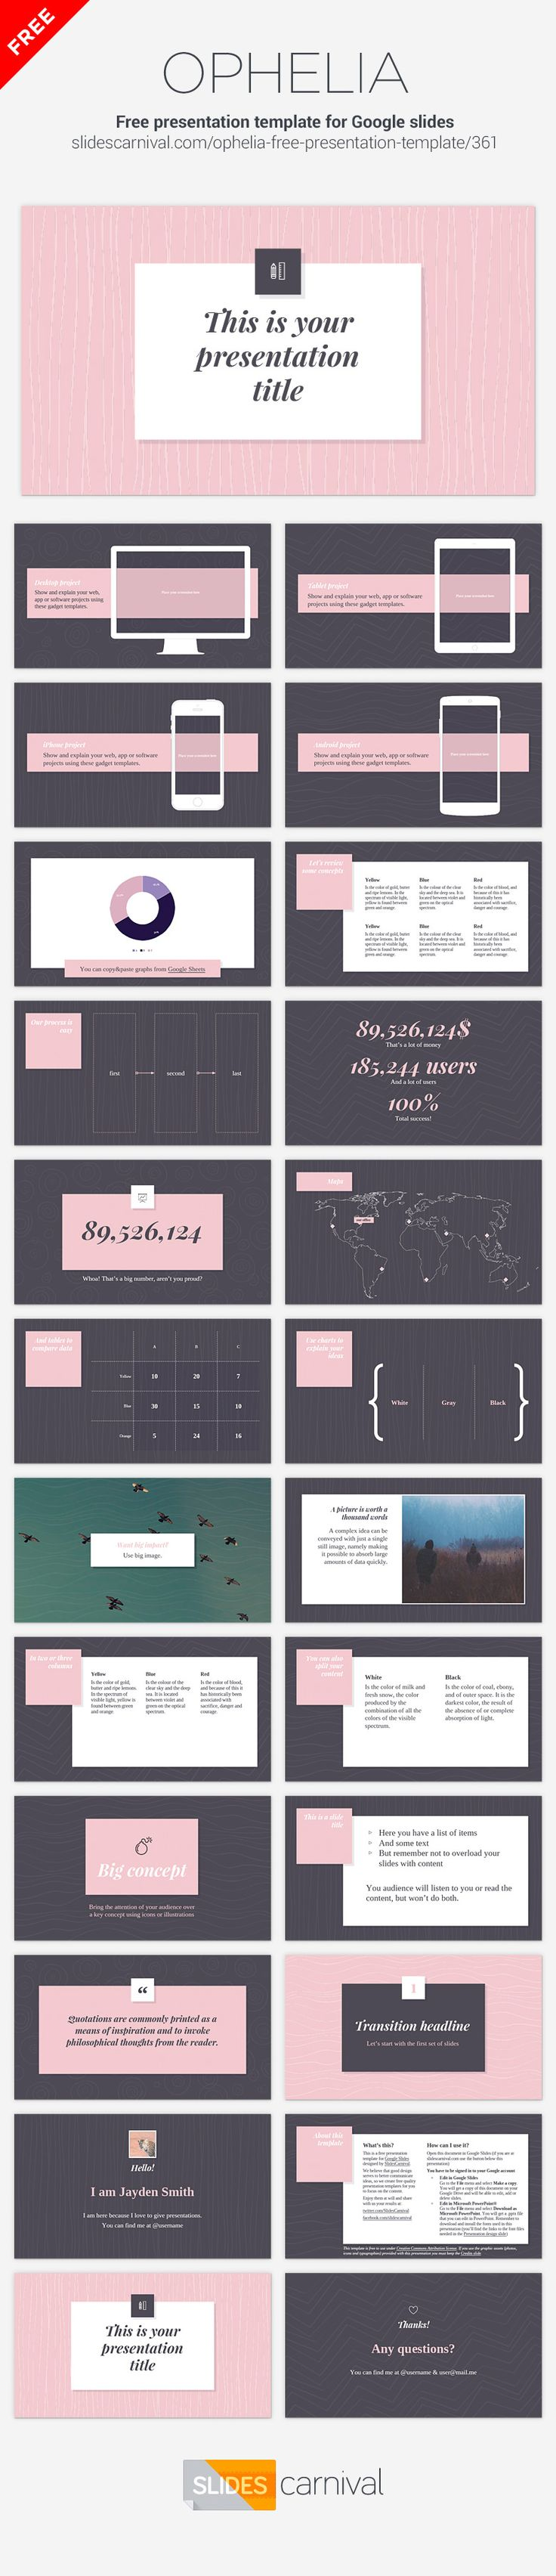 best ideas about presentation topics interesting this presentation template has an elegant and stylish design pink as main accent color it adds a feminine touch to your ideas